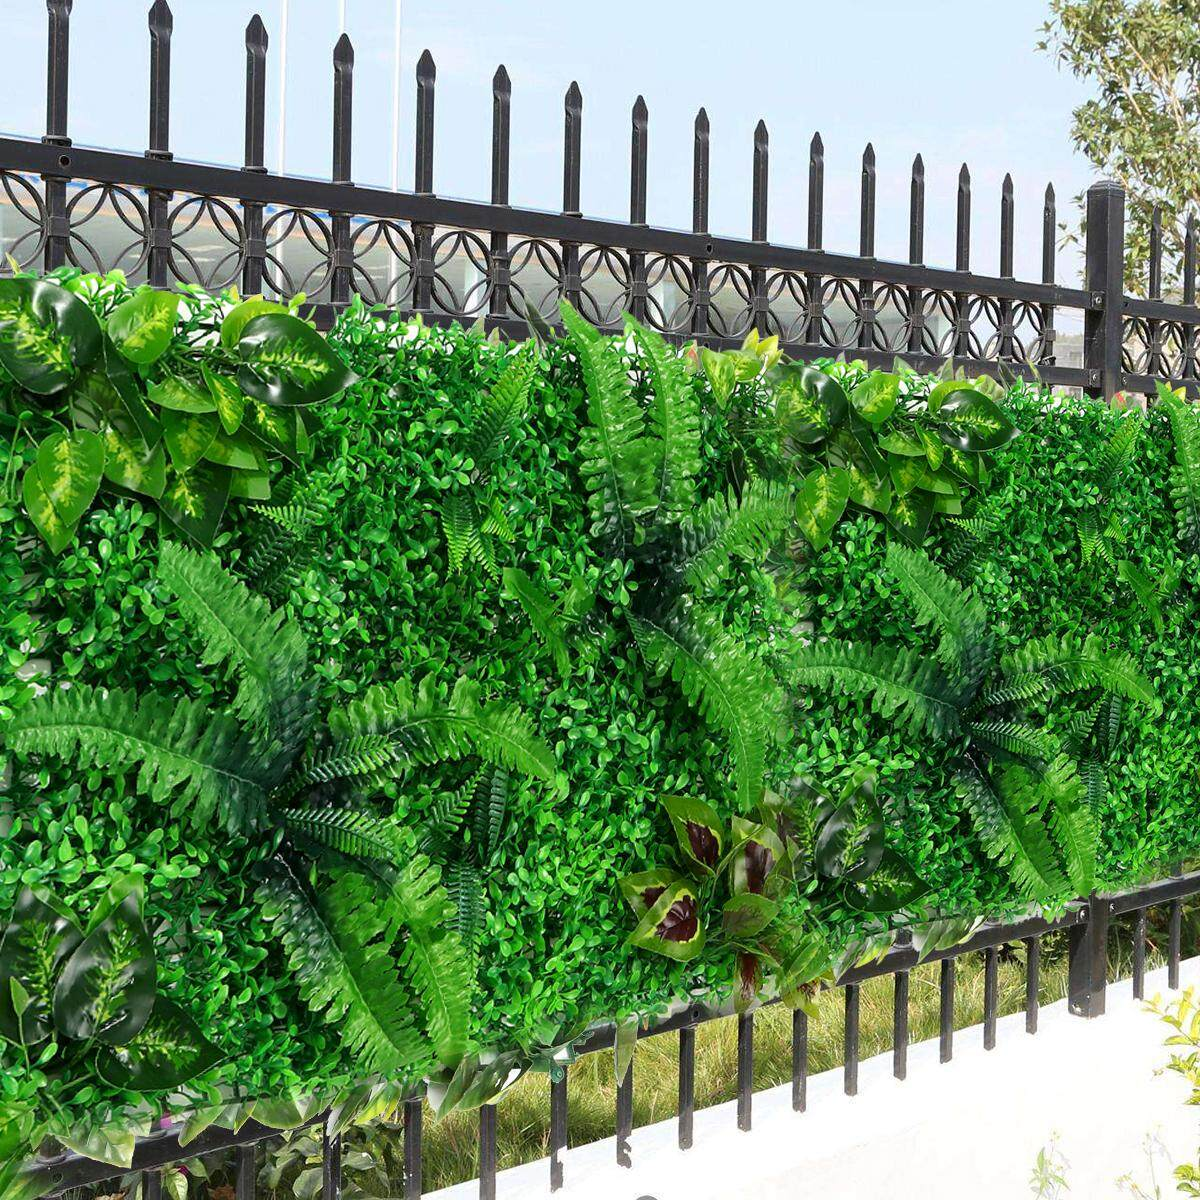 Artificial Topiary Hedges Panels Plastic Faux Shrubs Fence Mat Greenery Wall Backdrop Decor Garden Privacy Screen Fence Deep Green Lazada